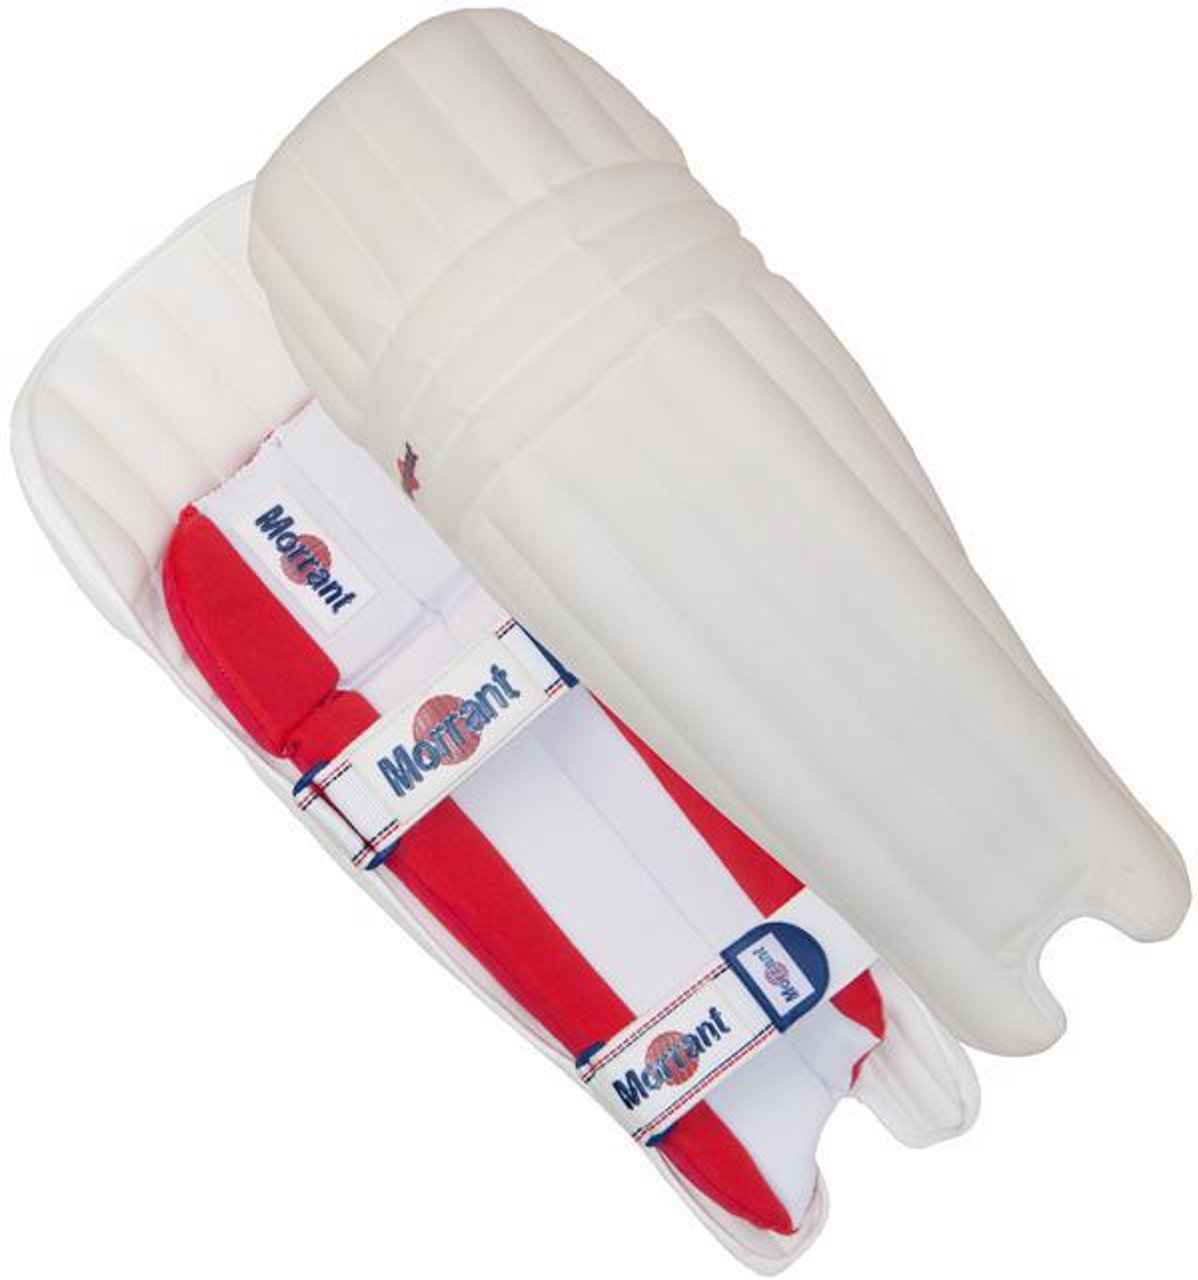 Morrant Batting Pad